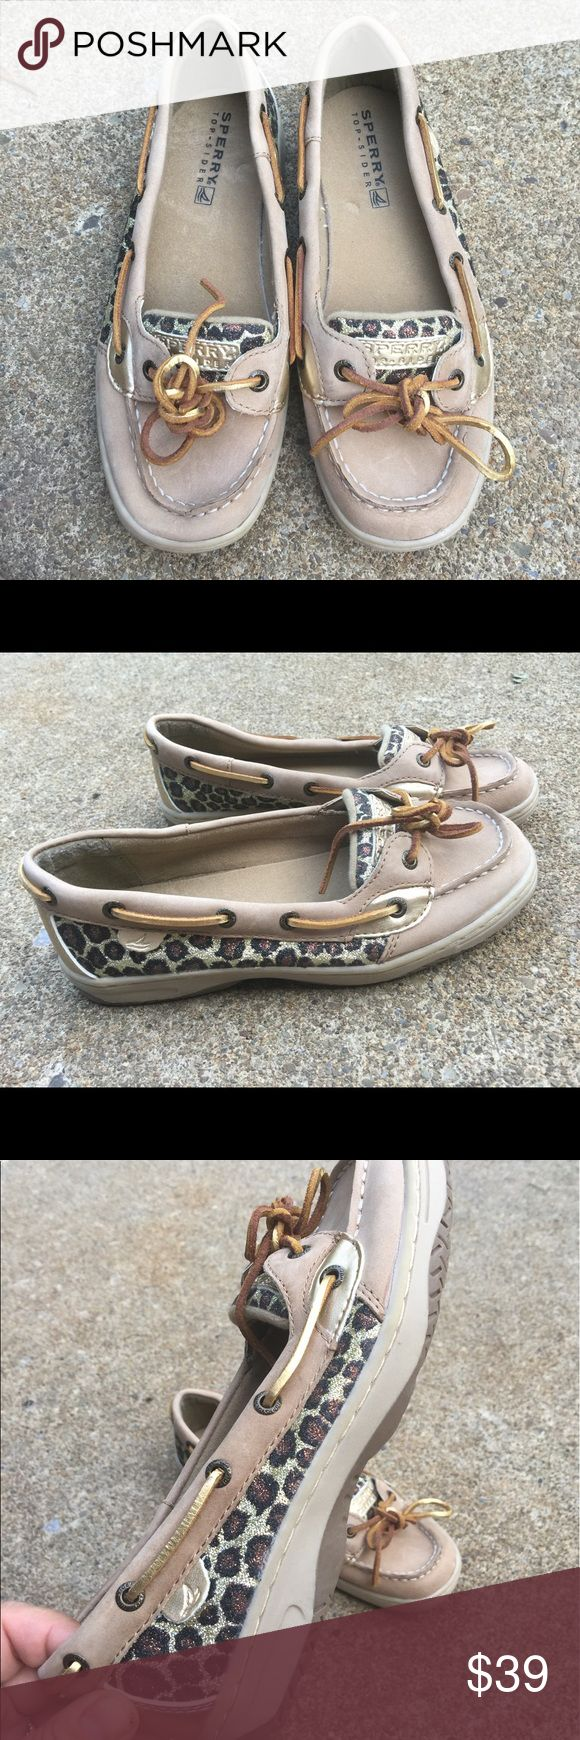 Youth Girls Sperry Top Sider Loafers 4M~NEW Youth Girls Sperry Top Sider Loafers 4M Sperry Top-Sider Shoes